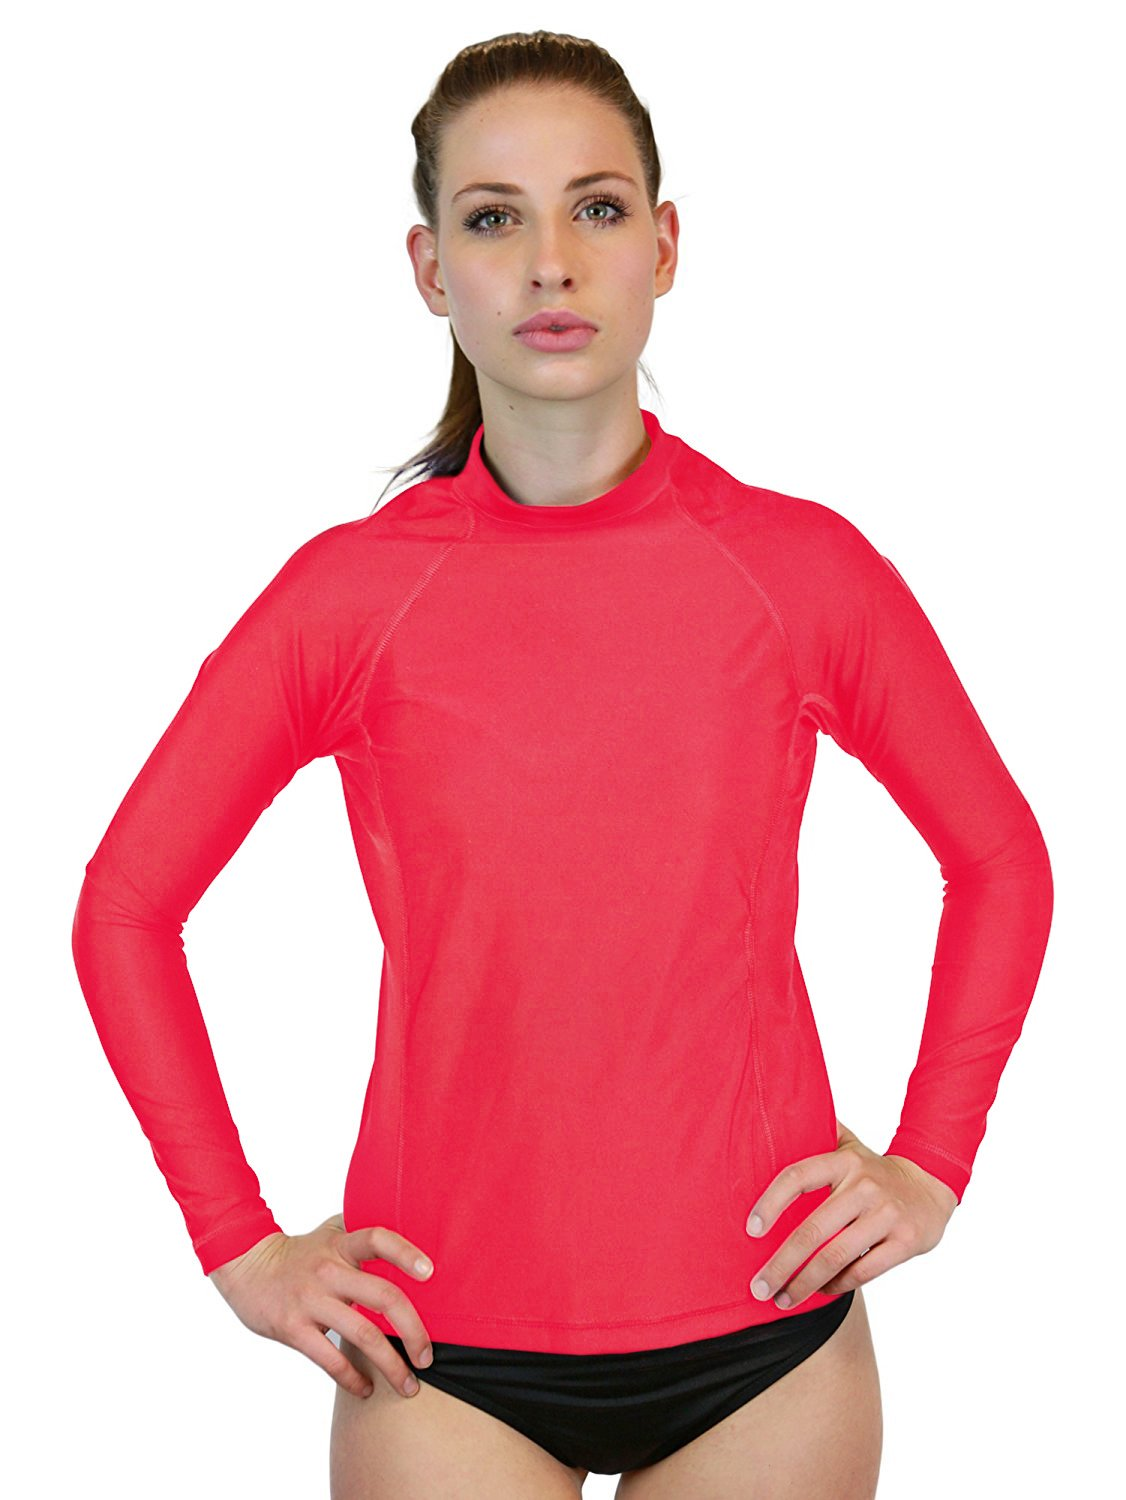 Swim Shirt for Women - Long Sleeve Rash Guard Top with UV 50 Skin/Sun Protection, Workout Shirt, Made in USA! (Salmon, X-Large)